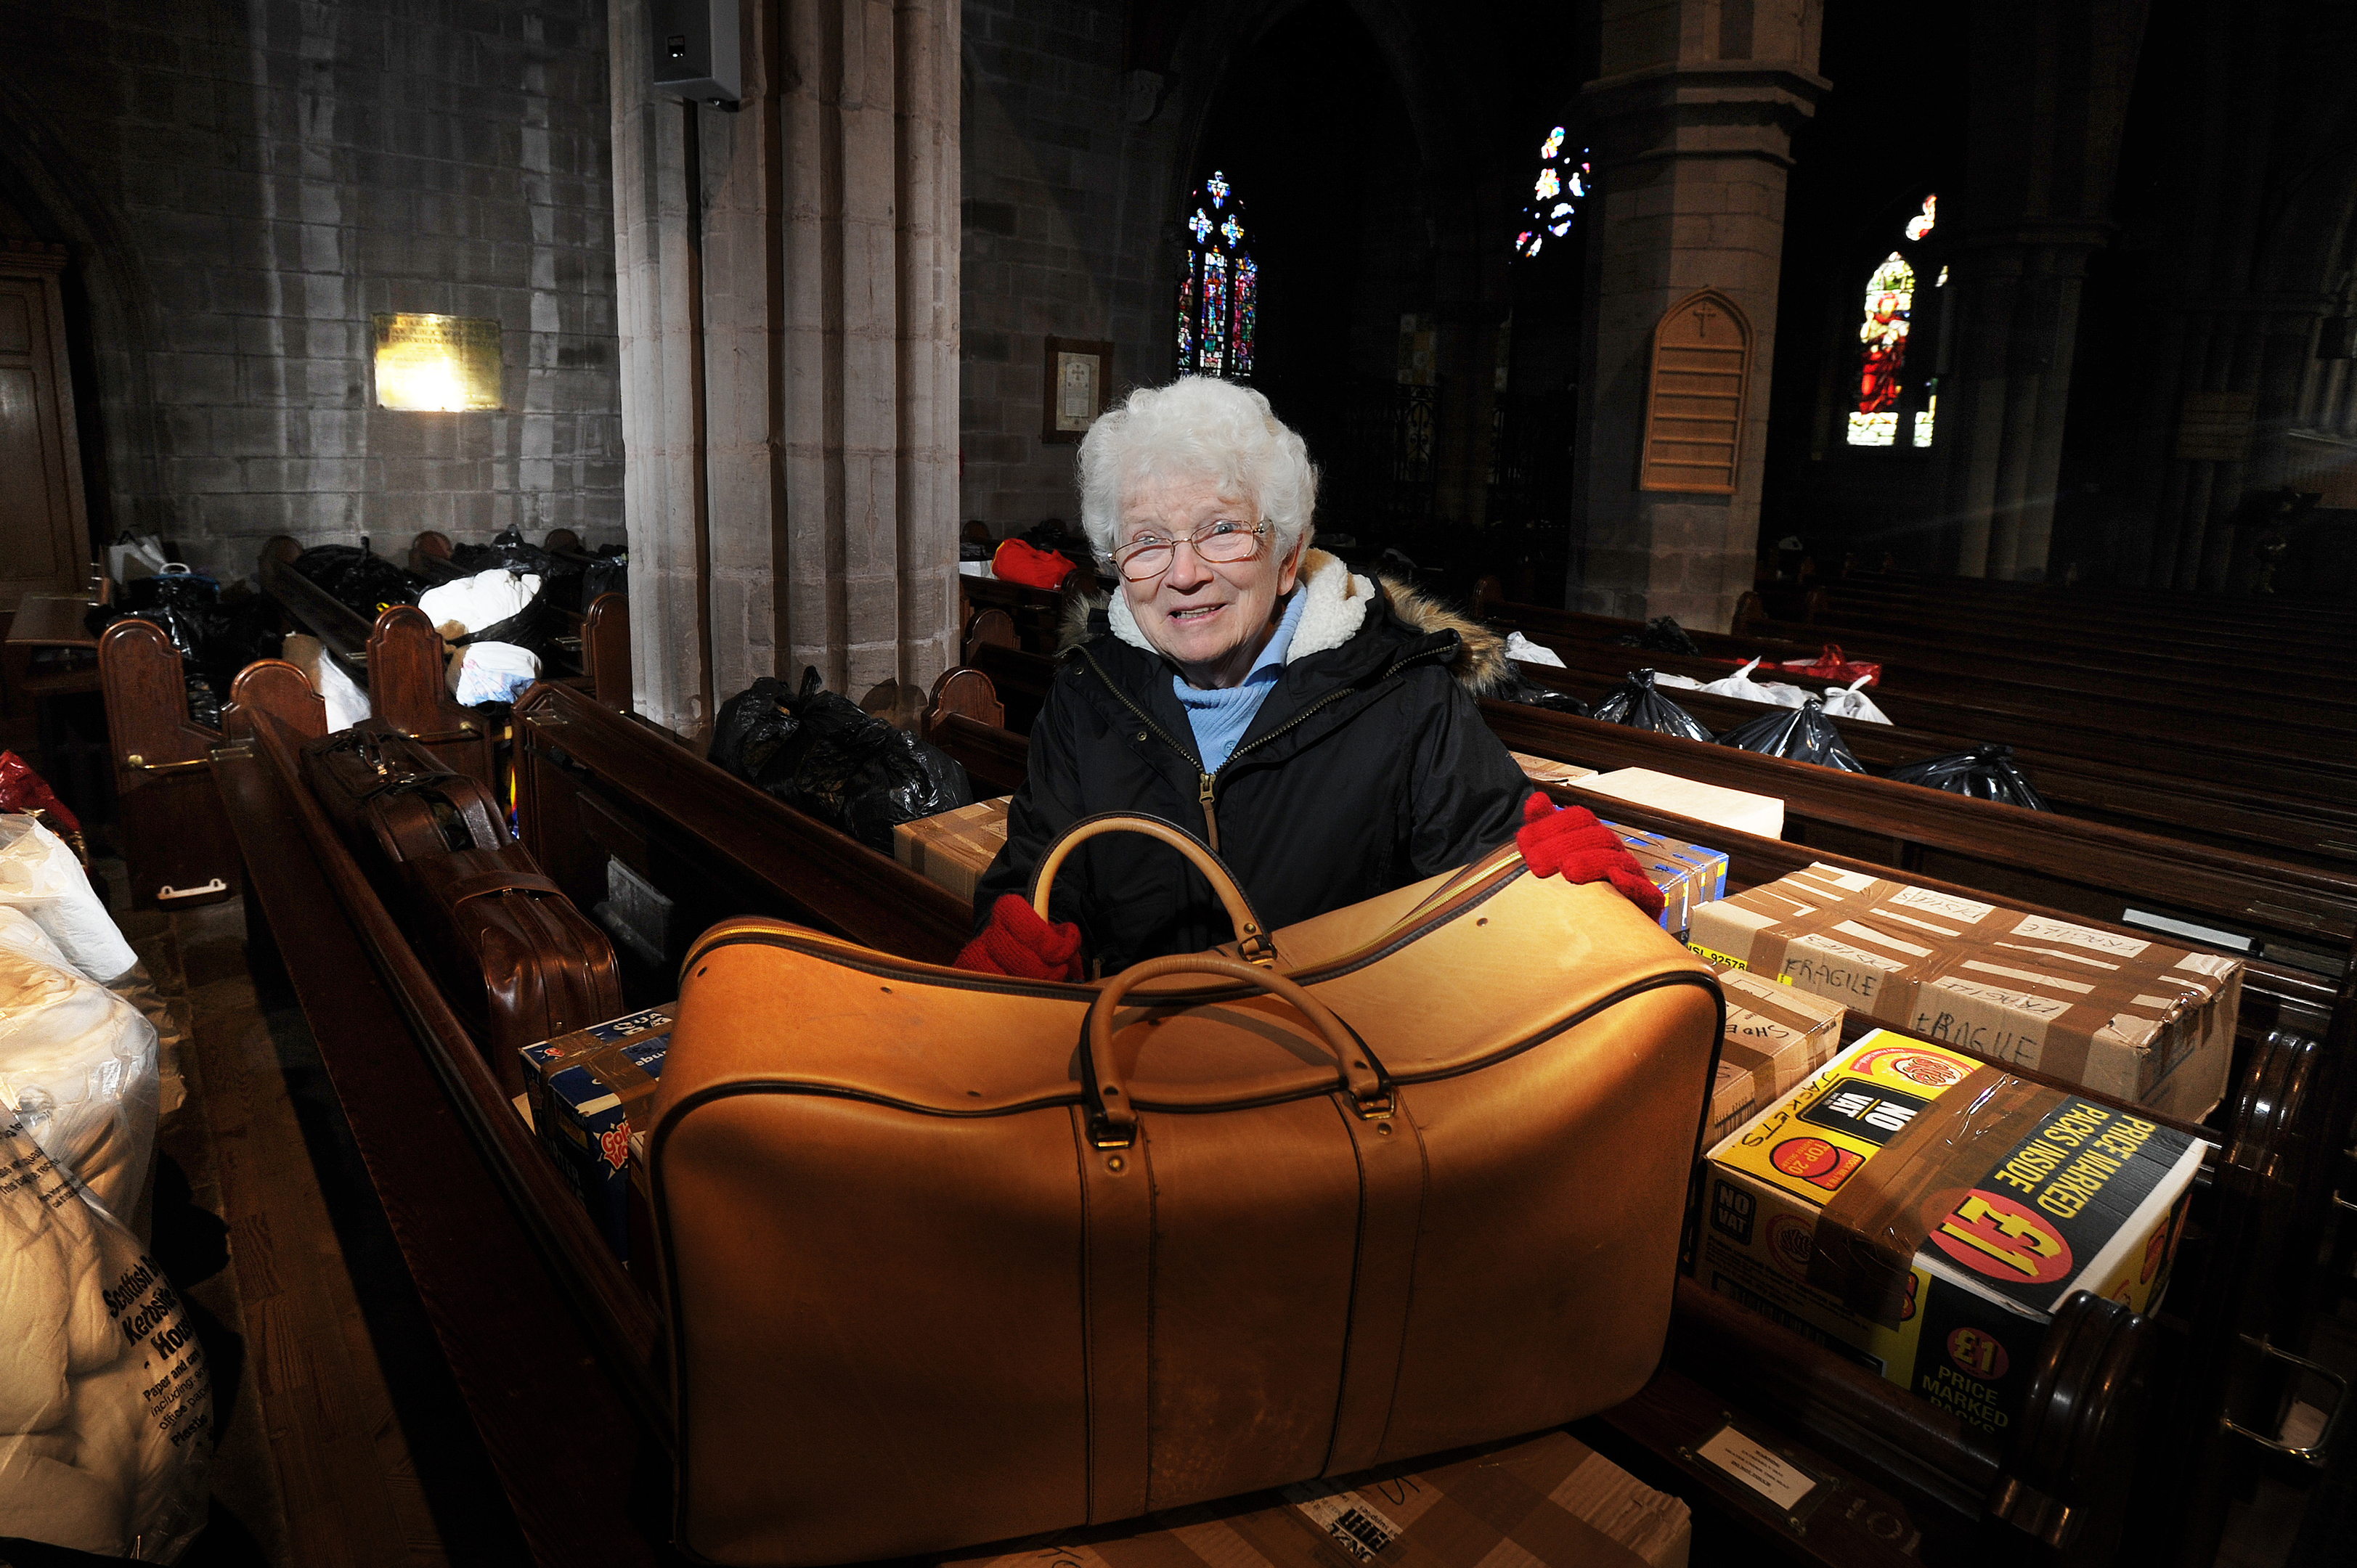 Irene Gillies hopes more items will be donated before Friday's deadline